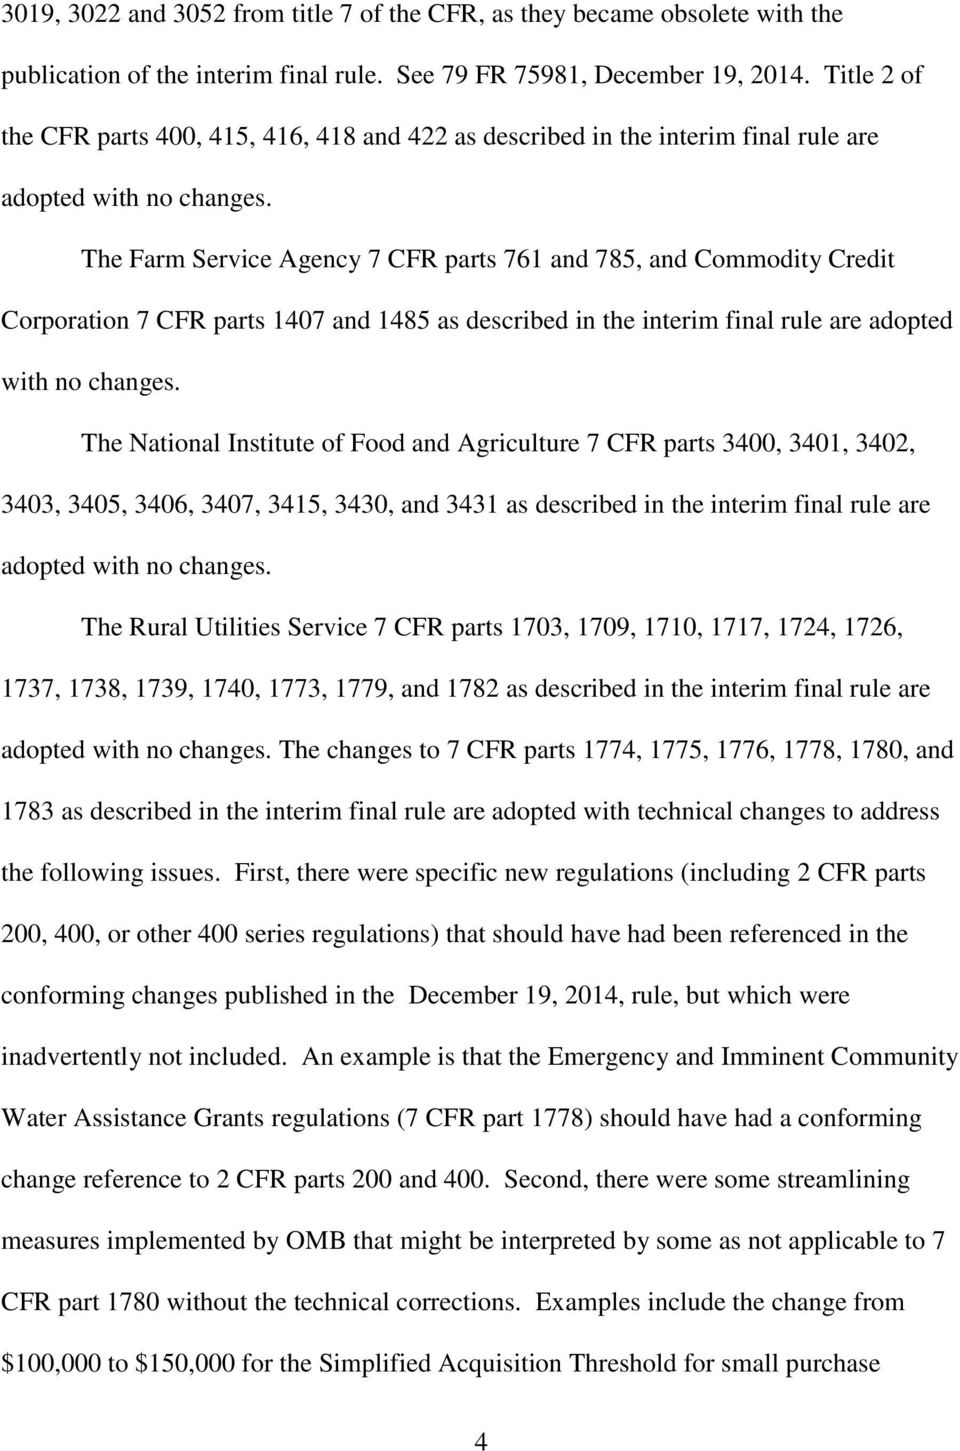 The Farm Service Agency 7 CFR parts 761 and 785, and Commodity Credit Corporation 7 CFR parts 1407 and 1485 as described in the interim final rule are adopted with no changes.